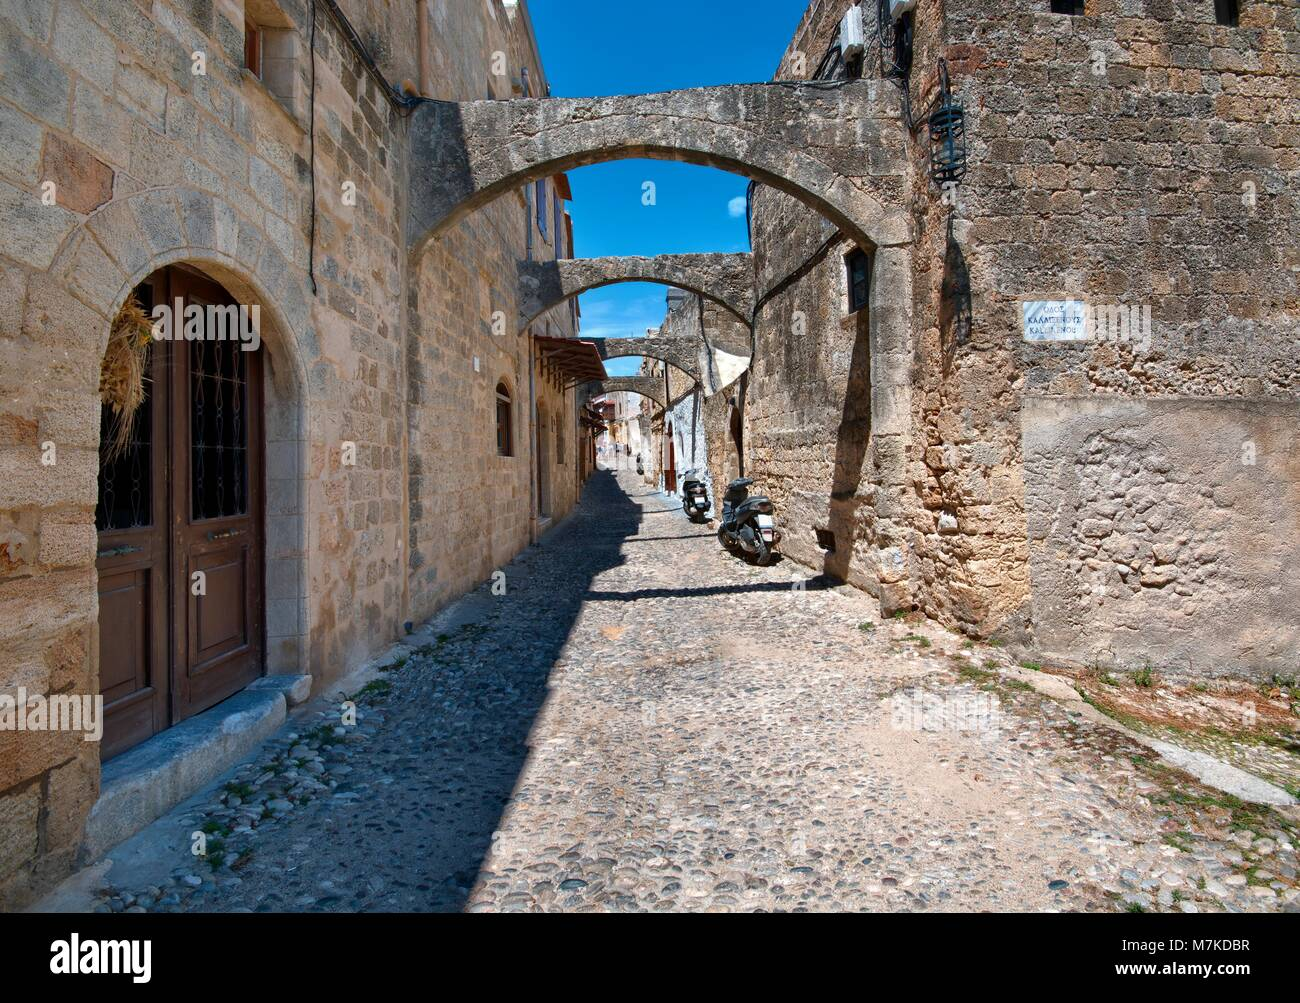 Narrow street and architecture of medieval Old Town of Rhodes - Ippodamou street, Greece - Stock Image